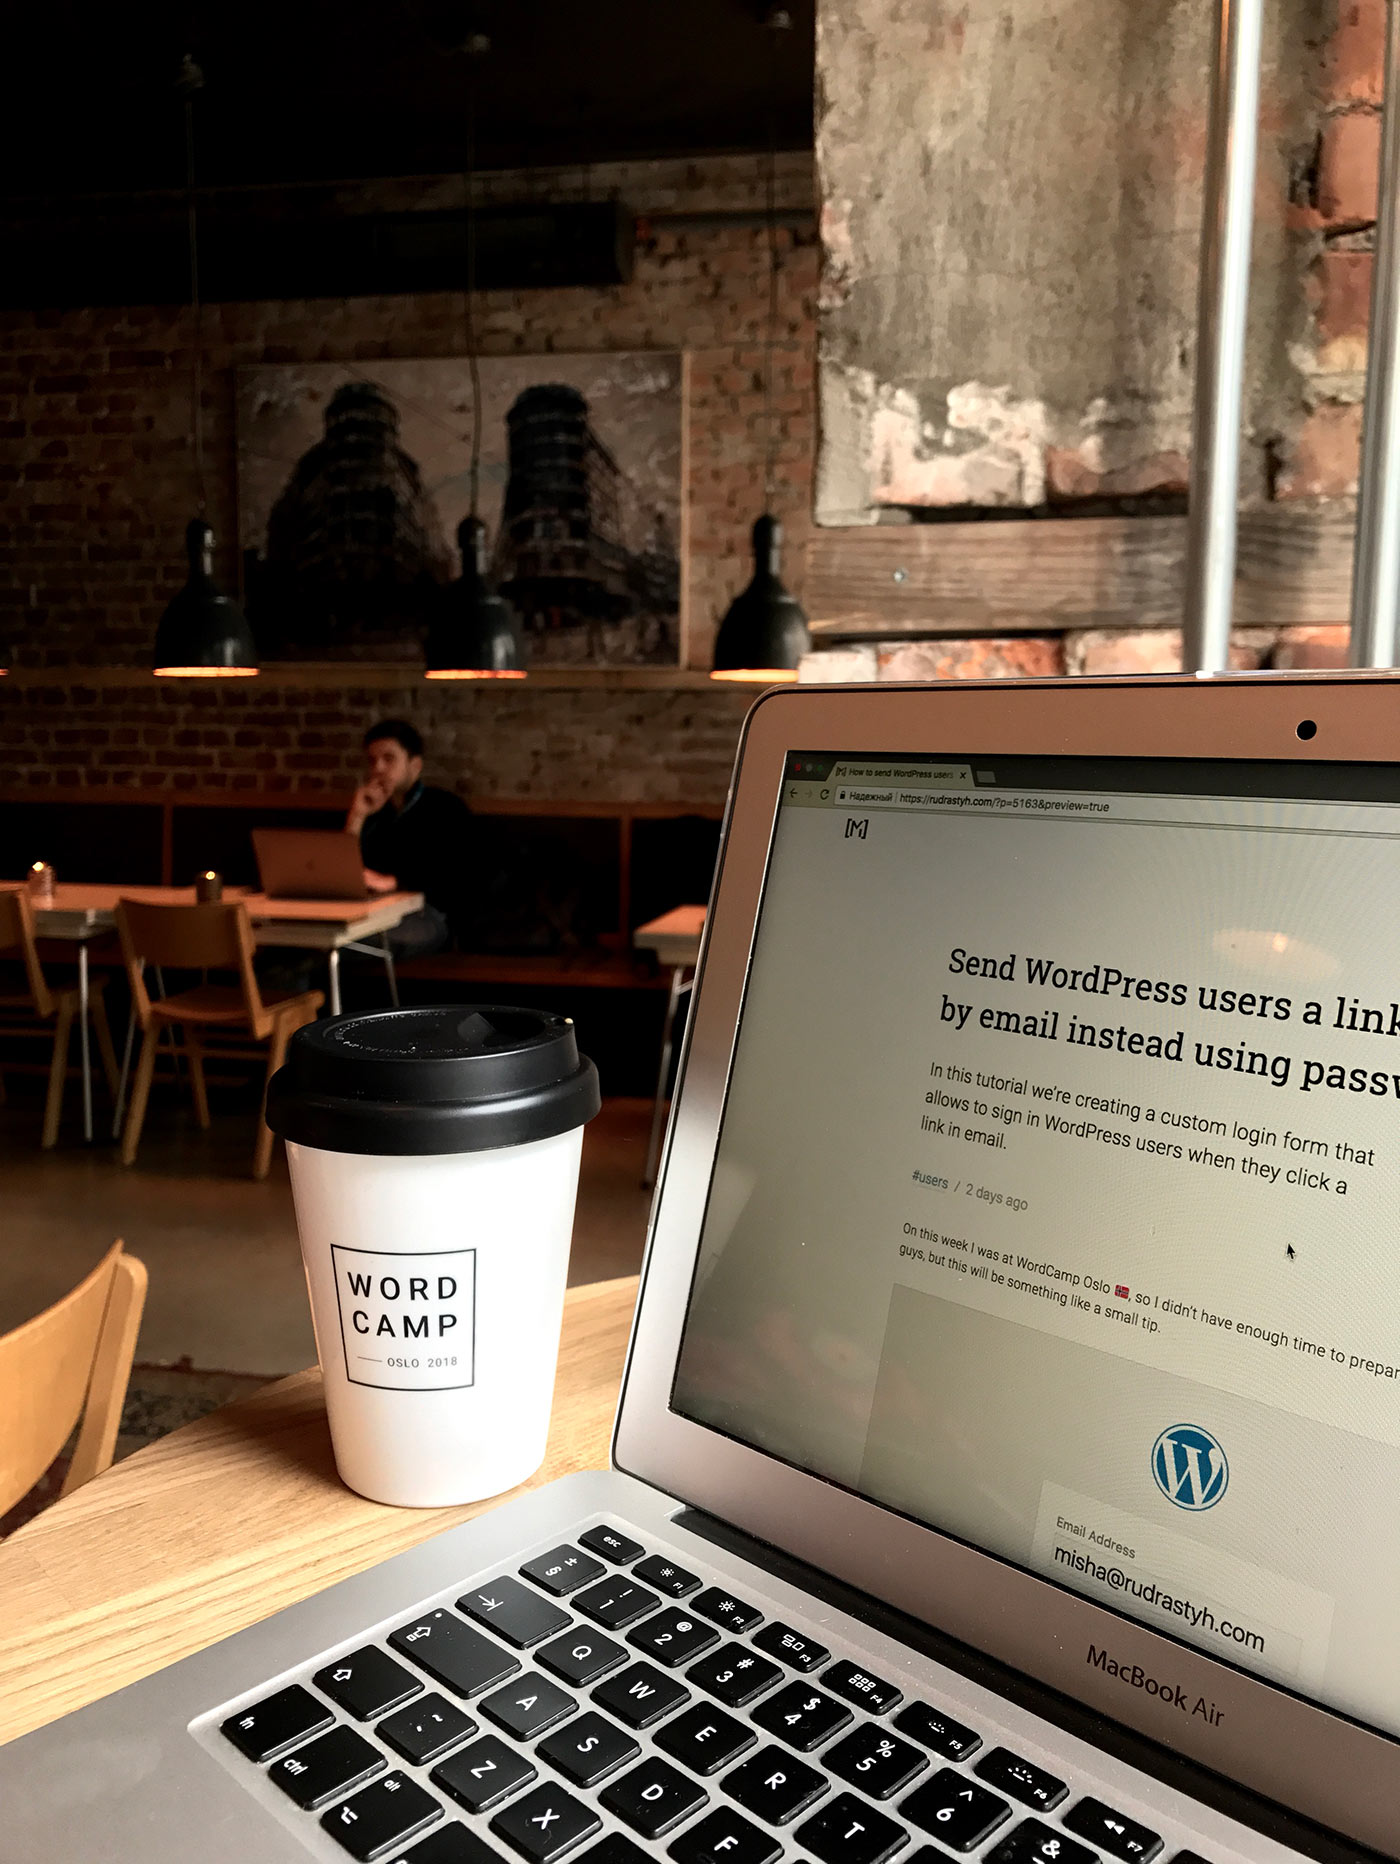 Publishing my new tutorials while on WordCamp Oslo